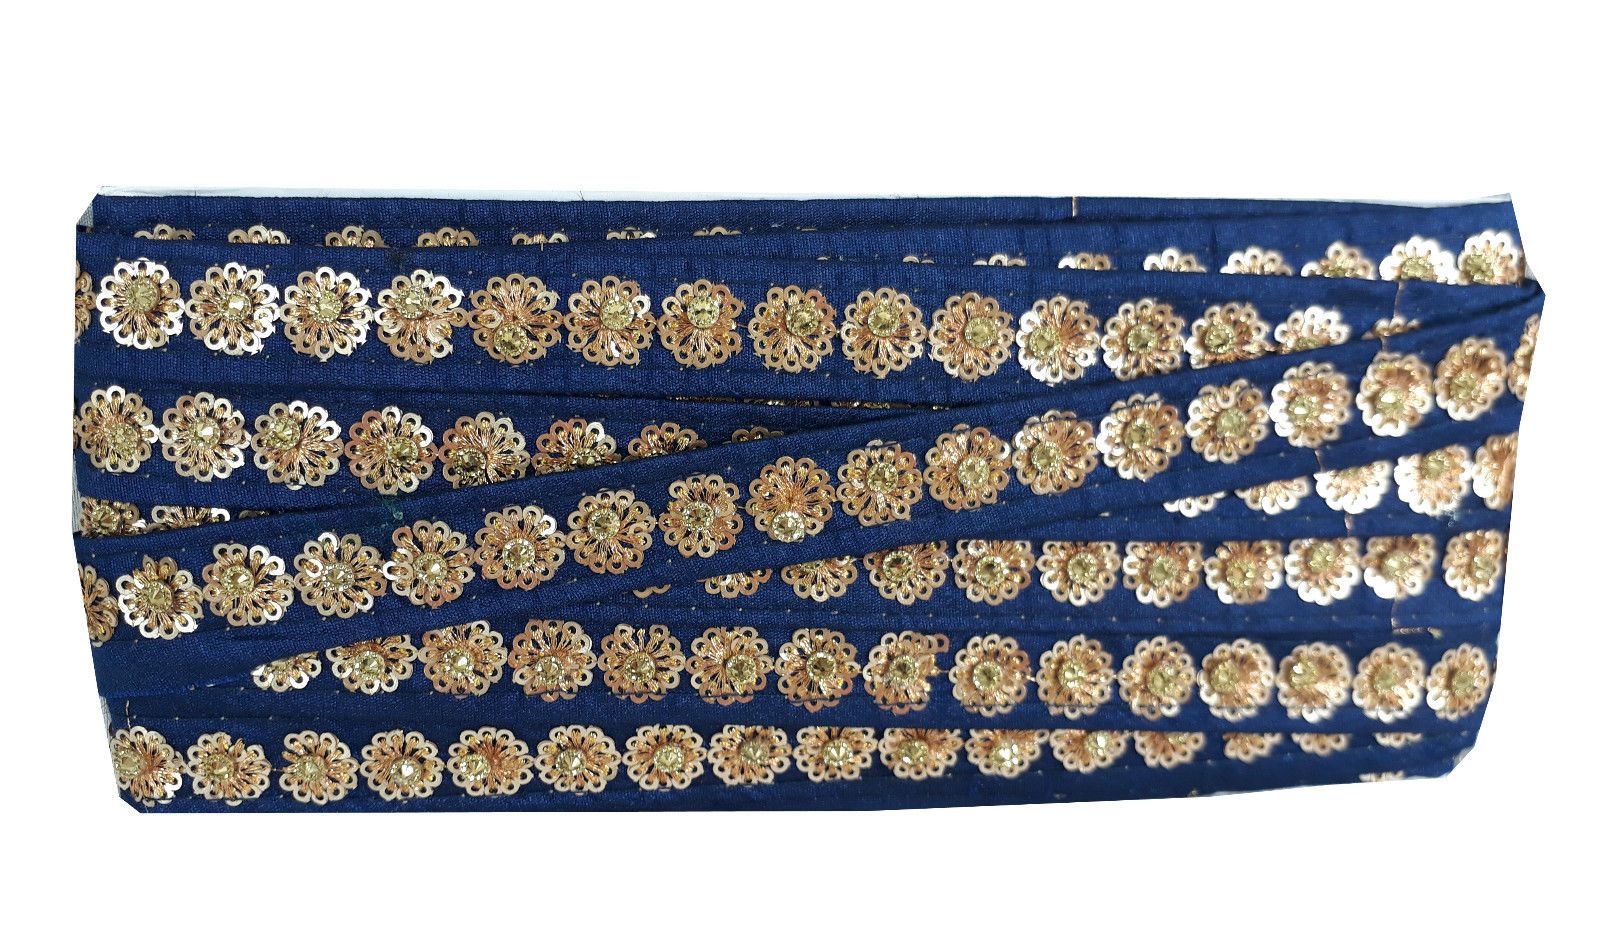 fabric trim wholesale lace fabric by the yard Blue Gold Embroidery, Sequins Polyester Less than a inch